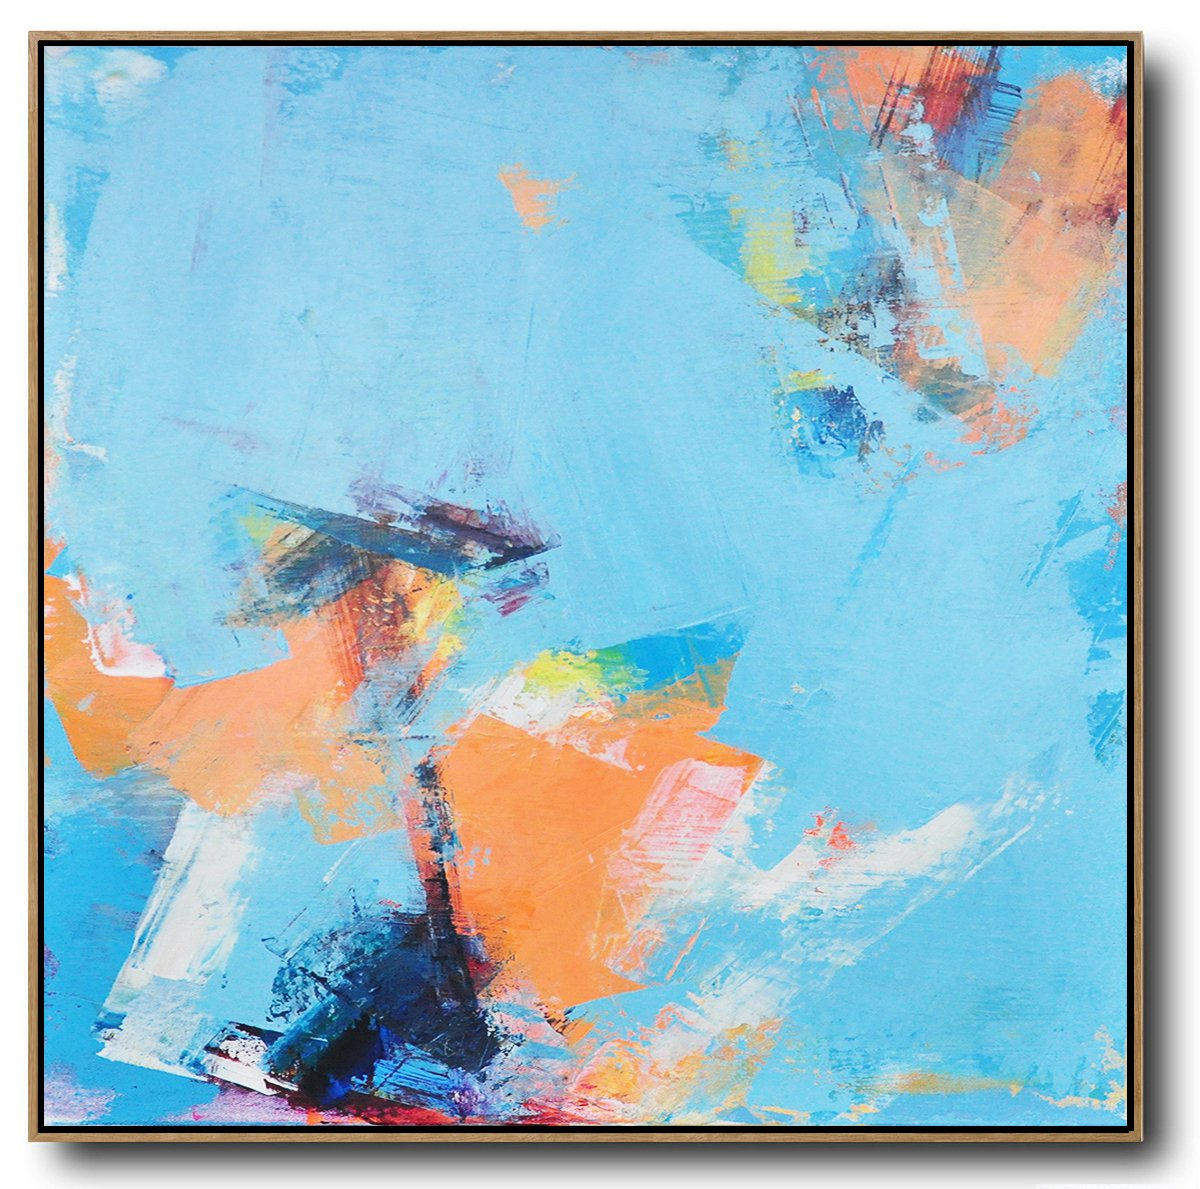 Extra Large Acrylic Painting On Canvas,Palette Knife Contemporary Art Canvas Painting,Huge Canvas Art On Canvas,Sky Blue,Orange,Yellow,White.etc